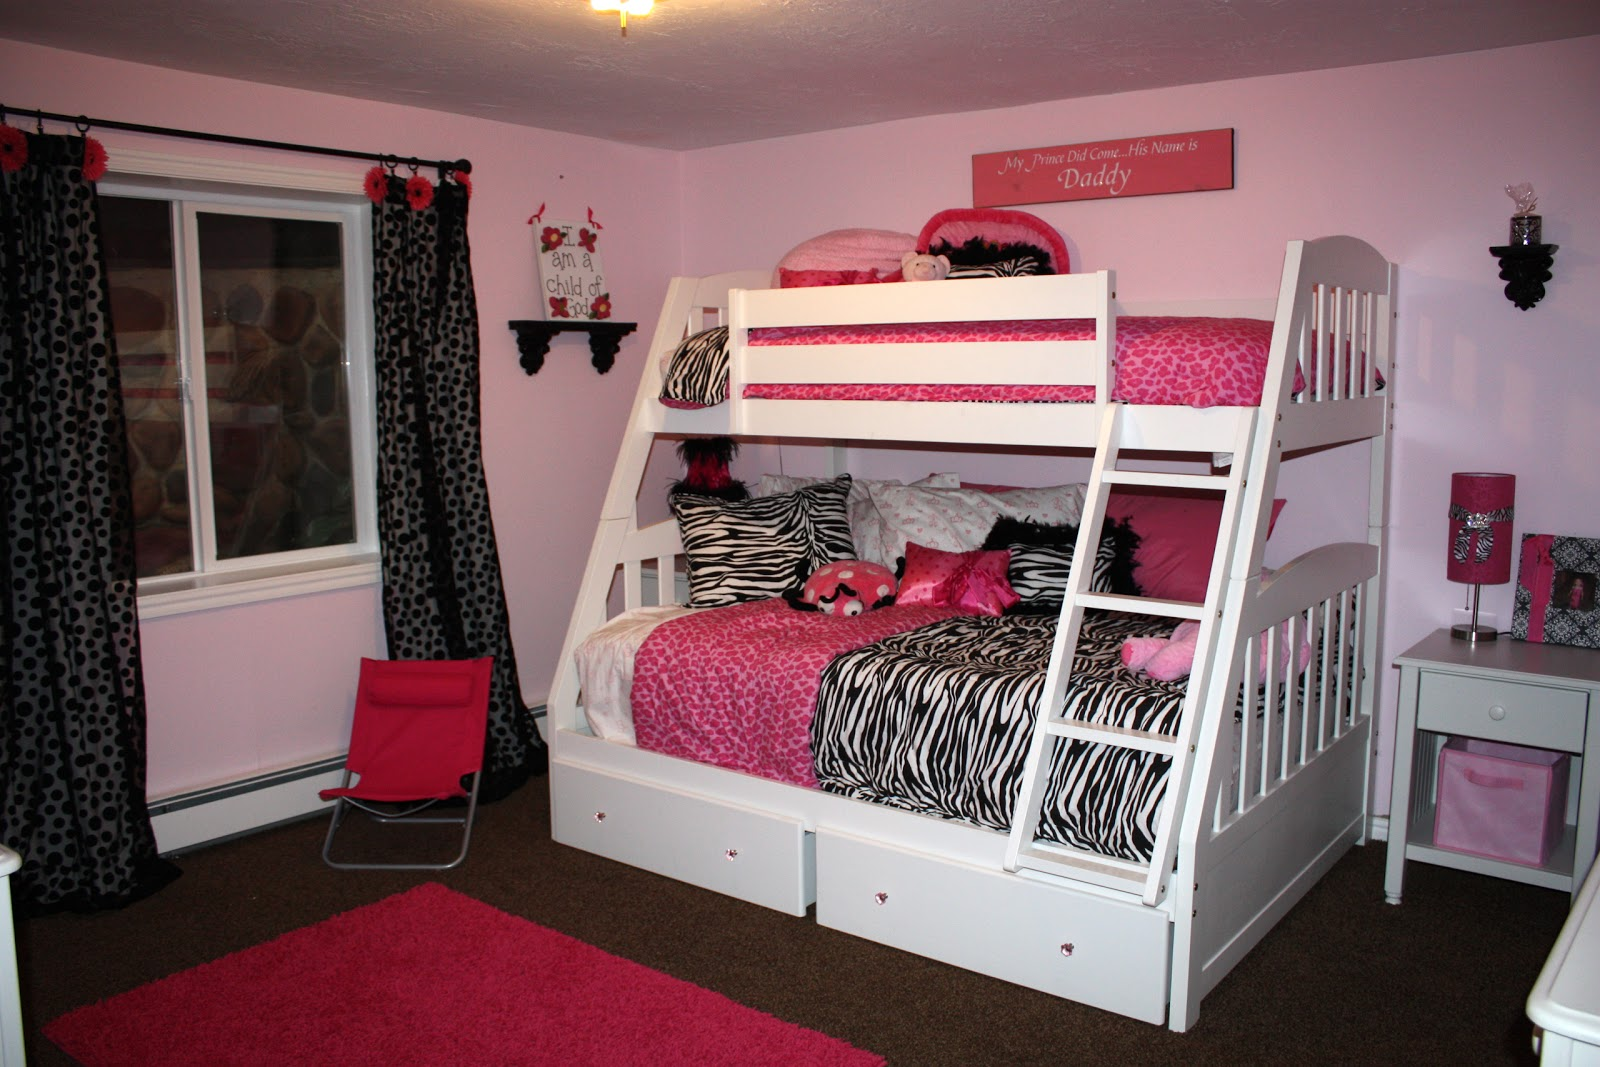 Bedroom Ideas For Teens: Wanna Be Balanced Mom: Cute Girls Bedrooms